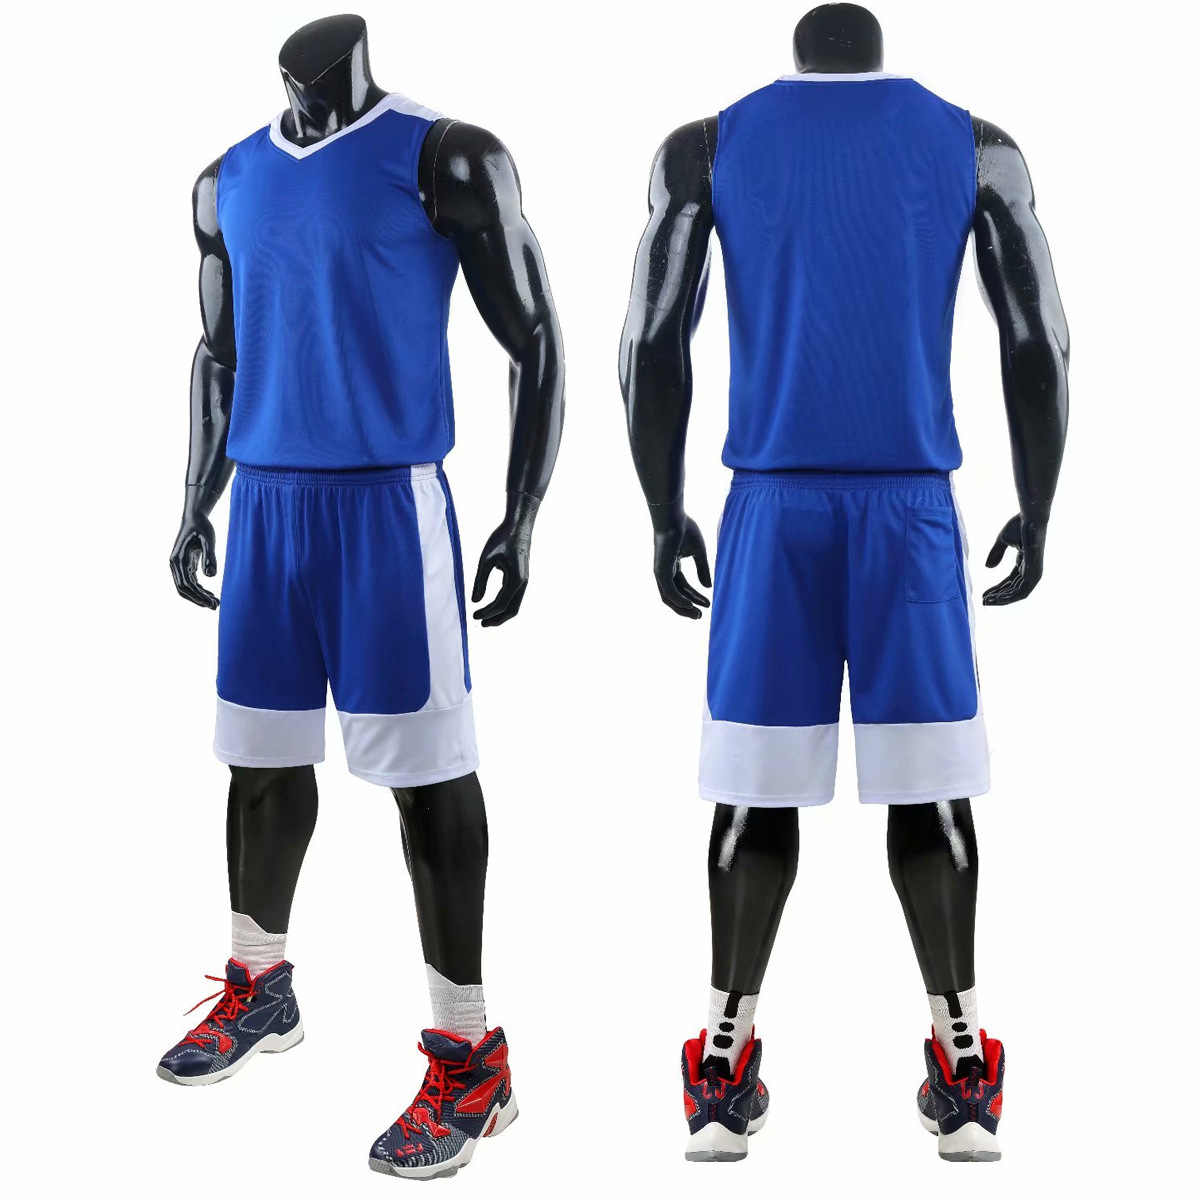 New High Quality Men Basketball Set Uniforms Kits Sports Clothes Kids Basketball Jerseys Kids College Tracksuits DIY Customized